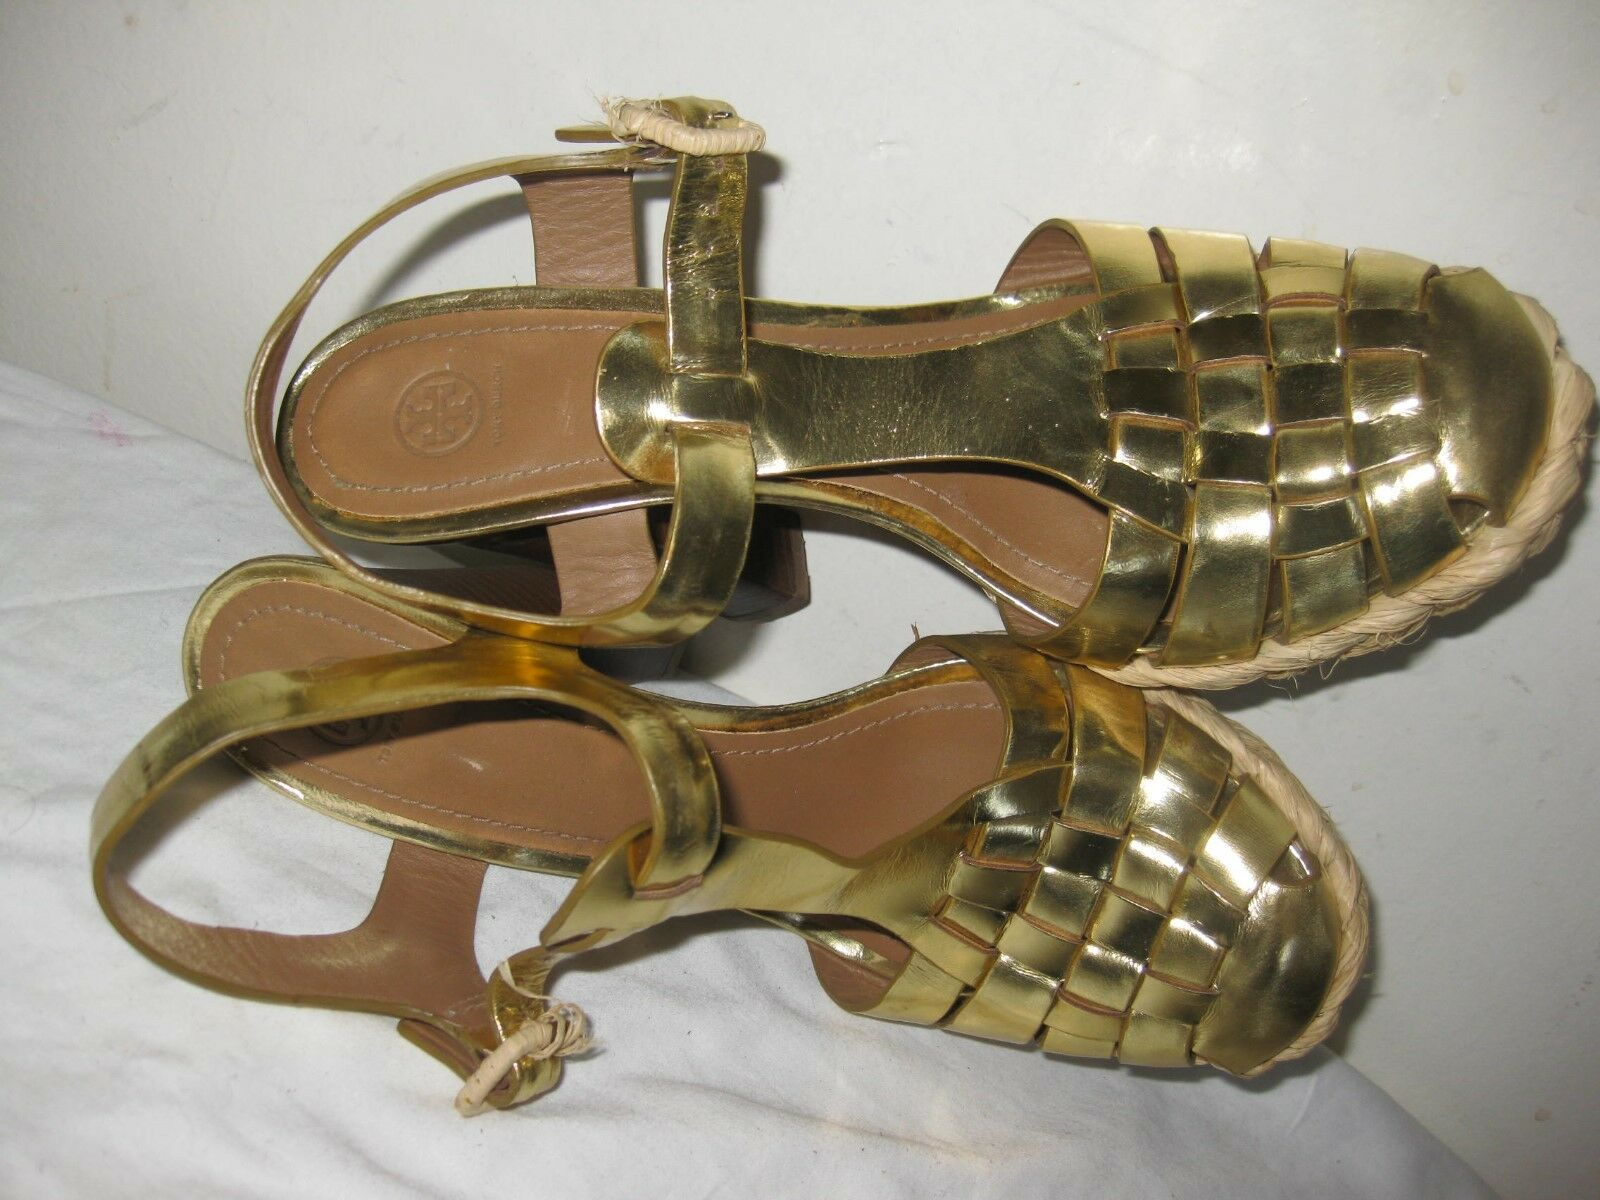 Tory Burch Leather jaune or Heel Heel Heel Woven Sandals chaussures Taille 8 M c38192